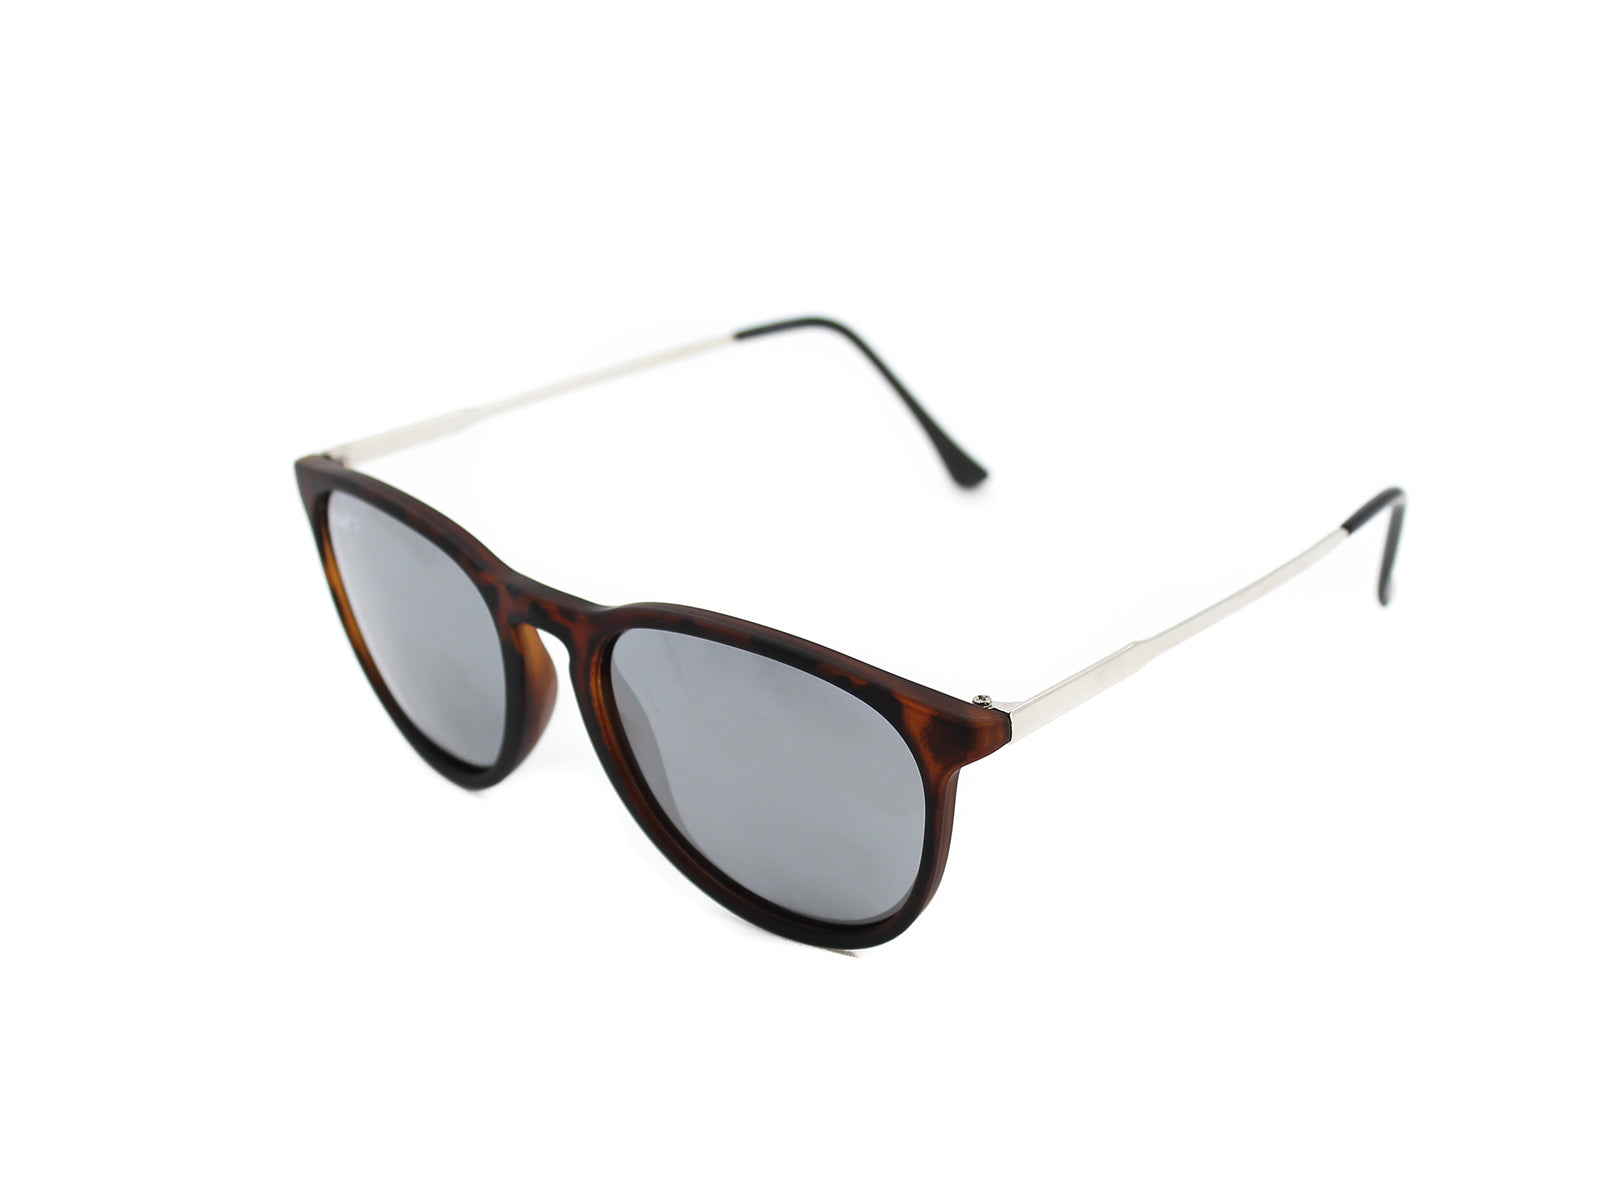 Porters - Cantons: Tortoise / Mirrored Smoke Polarized